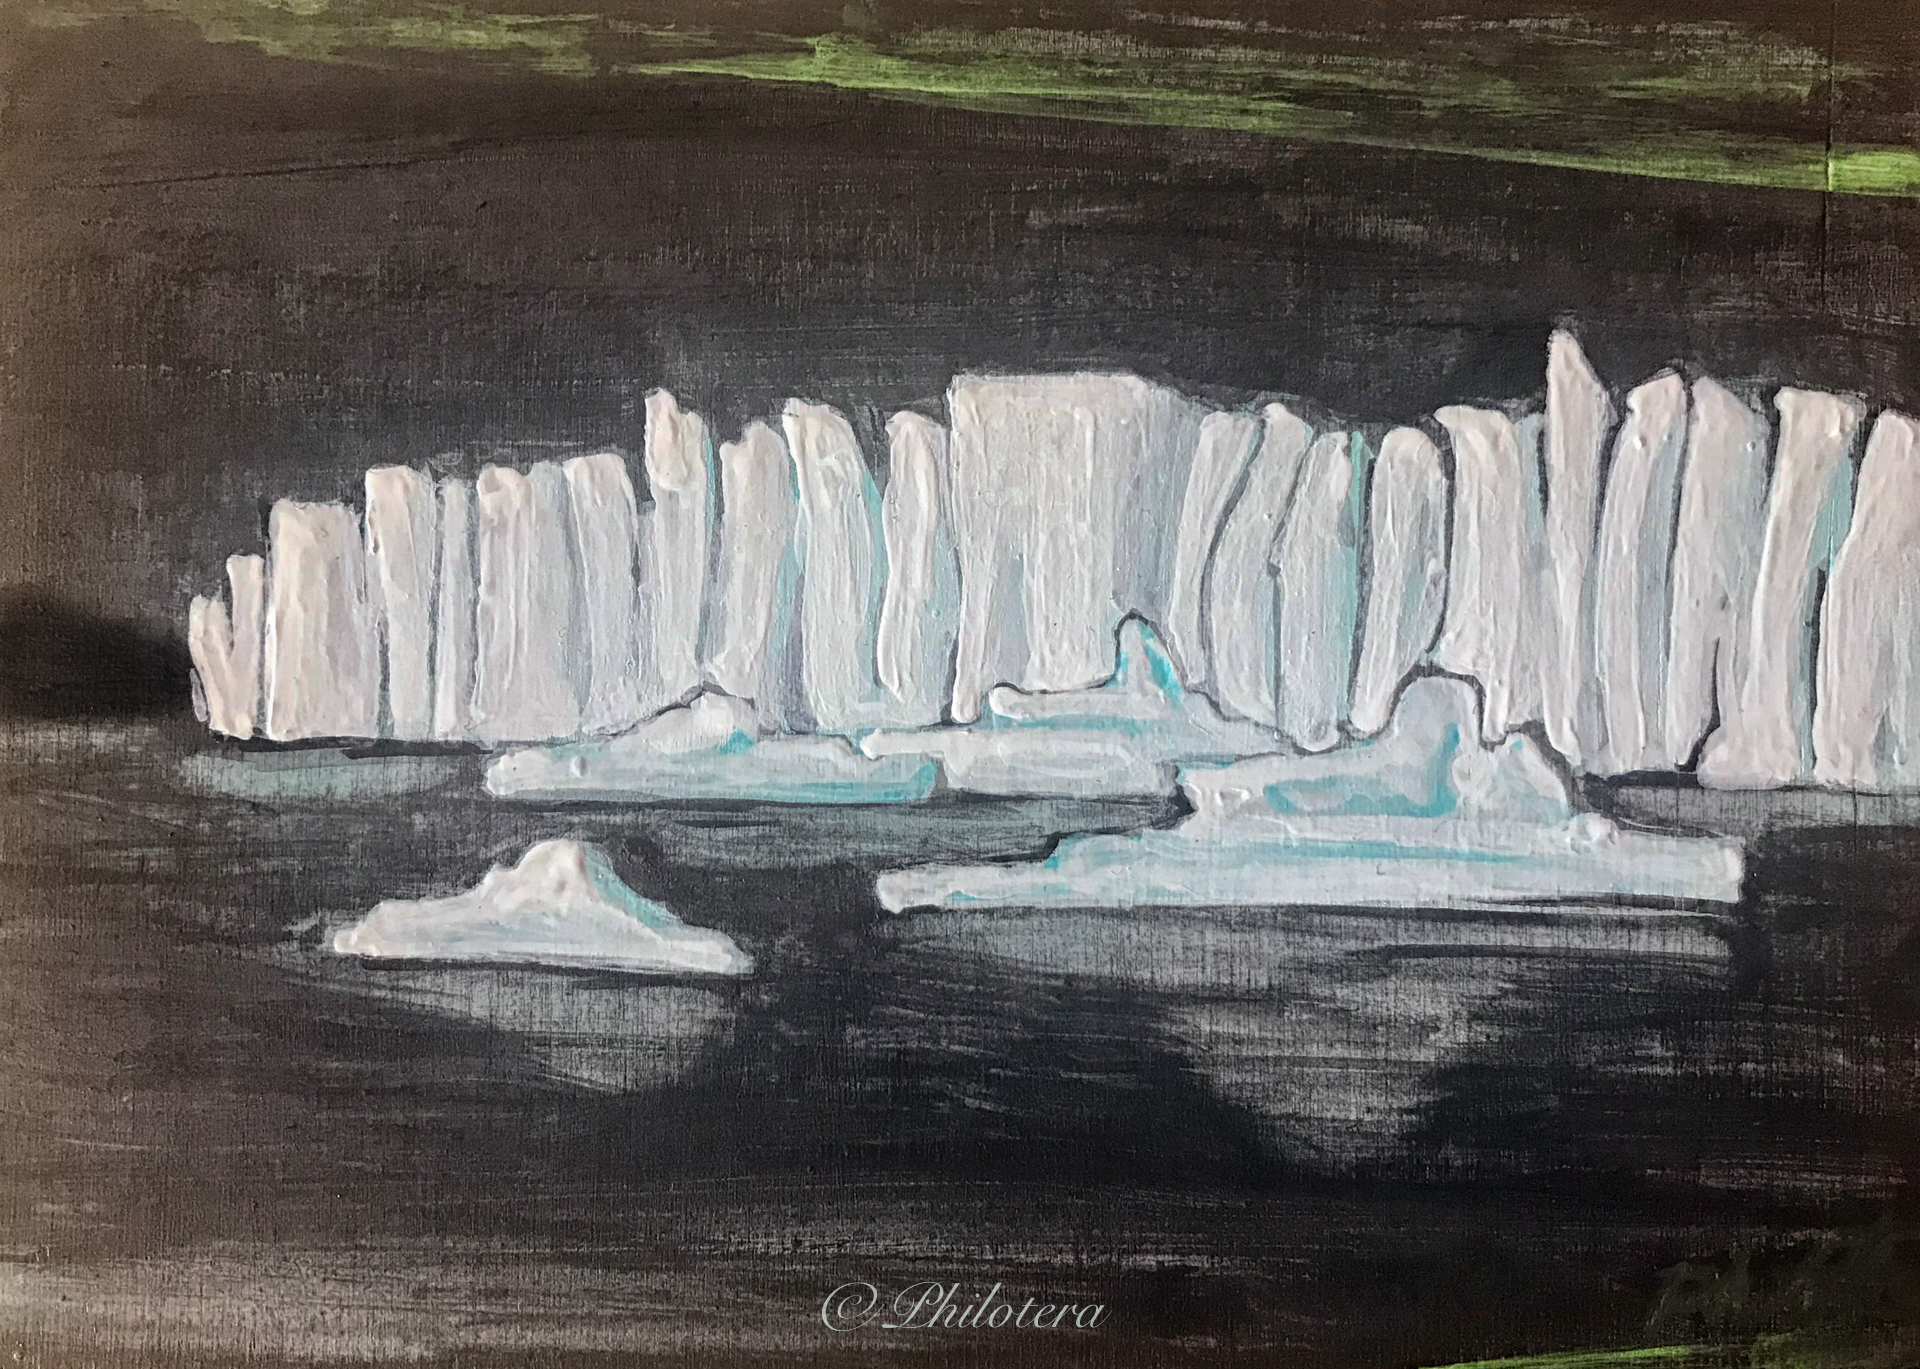 Painted sketch of glaciers and icebergs